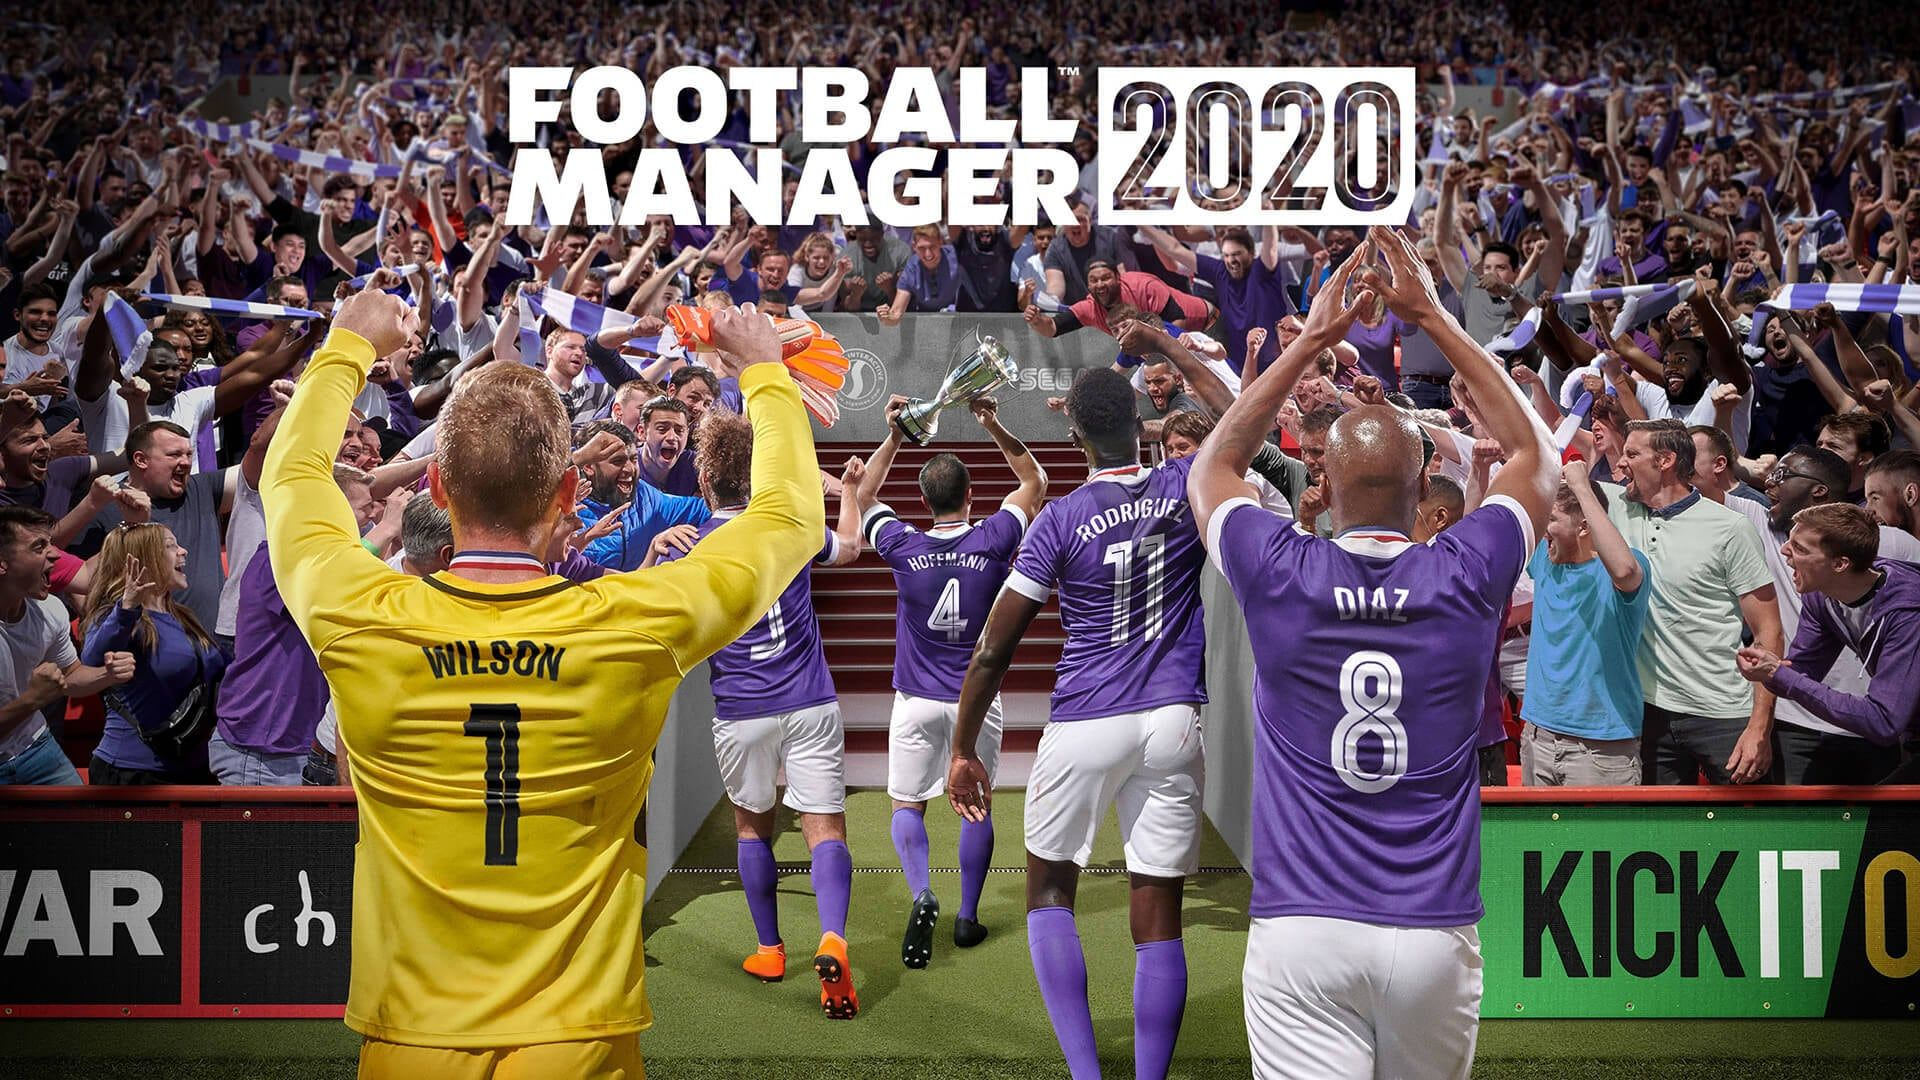 Football Manager 2020 How To Download For Free Football Manager What Is Football Free Football